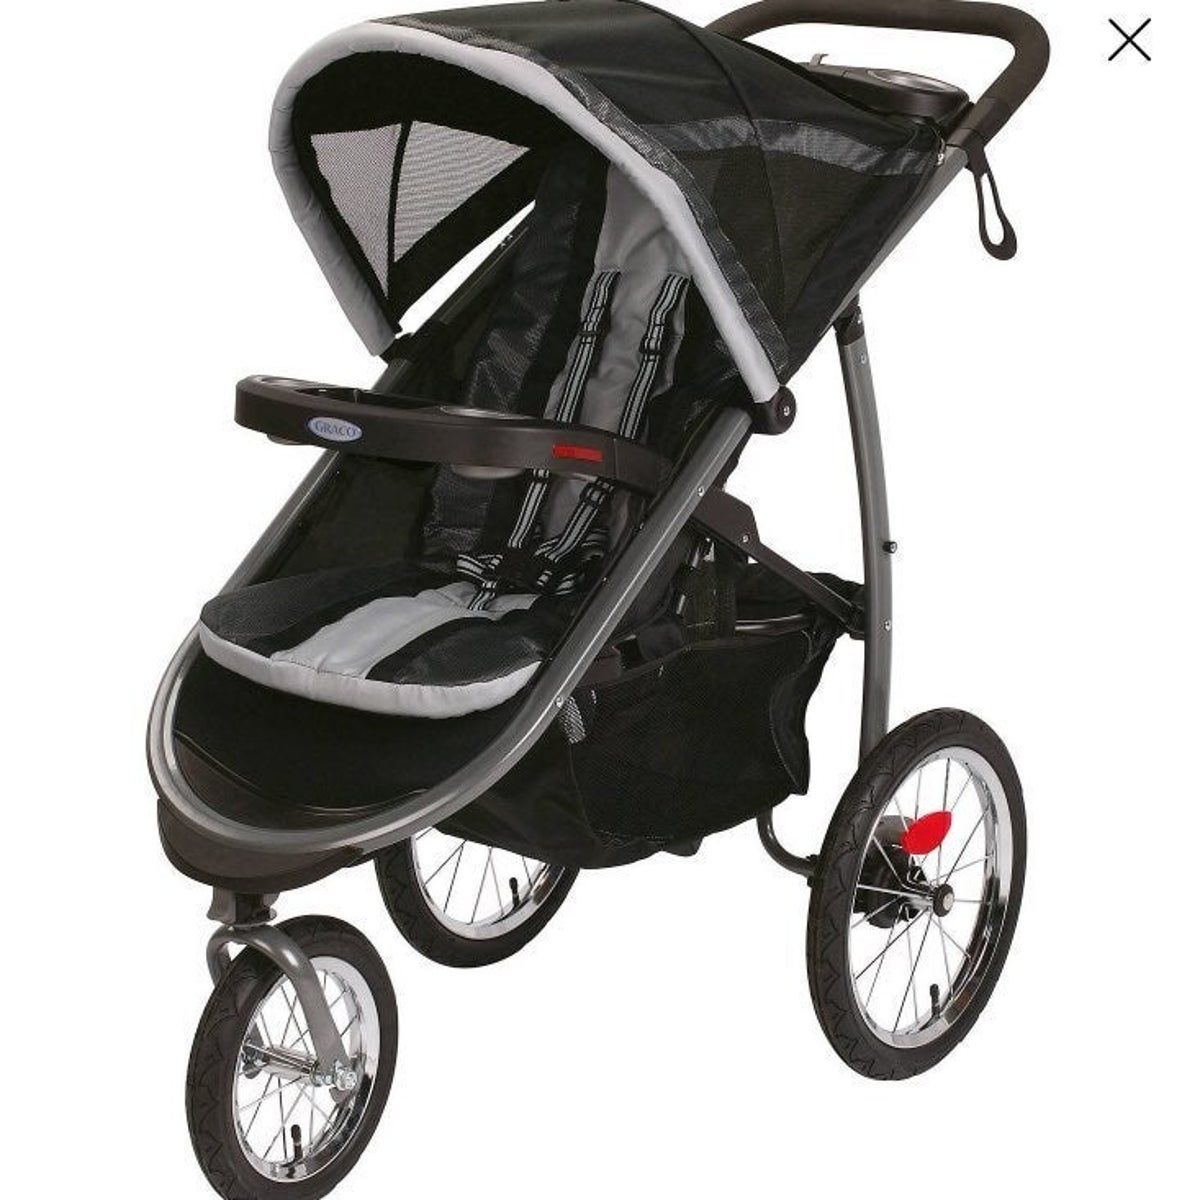 Pin by Ruthrojas on coches para bebés in 2020 Graco